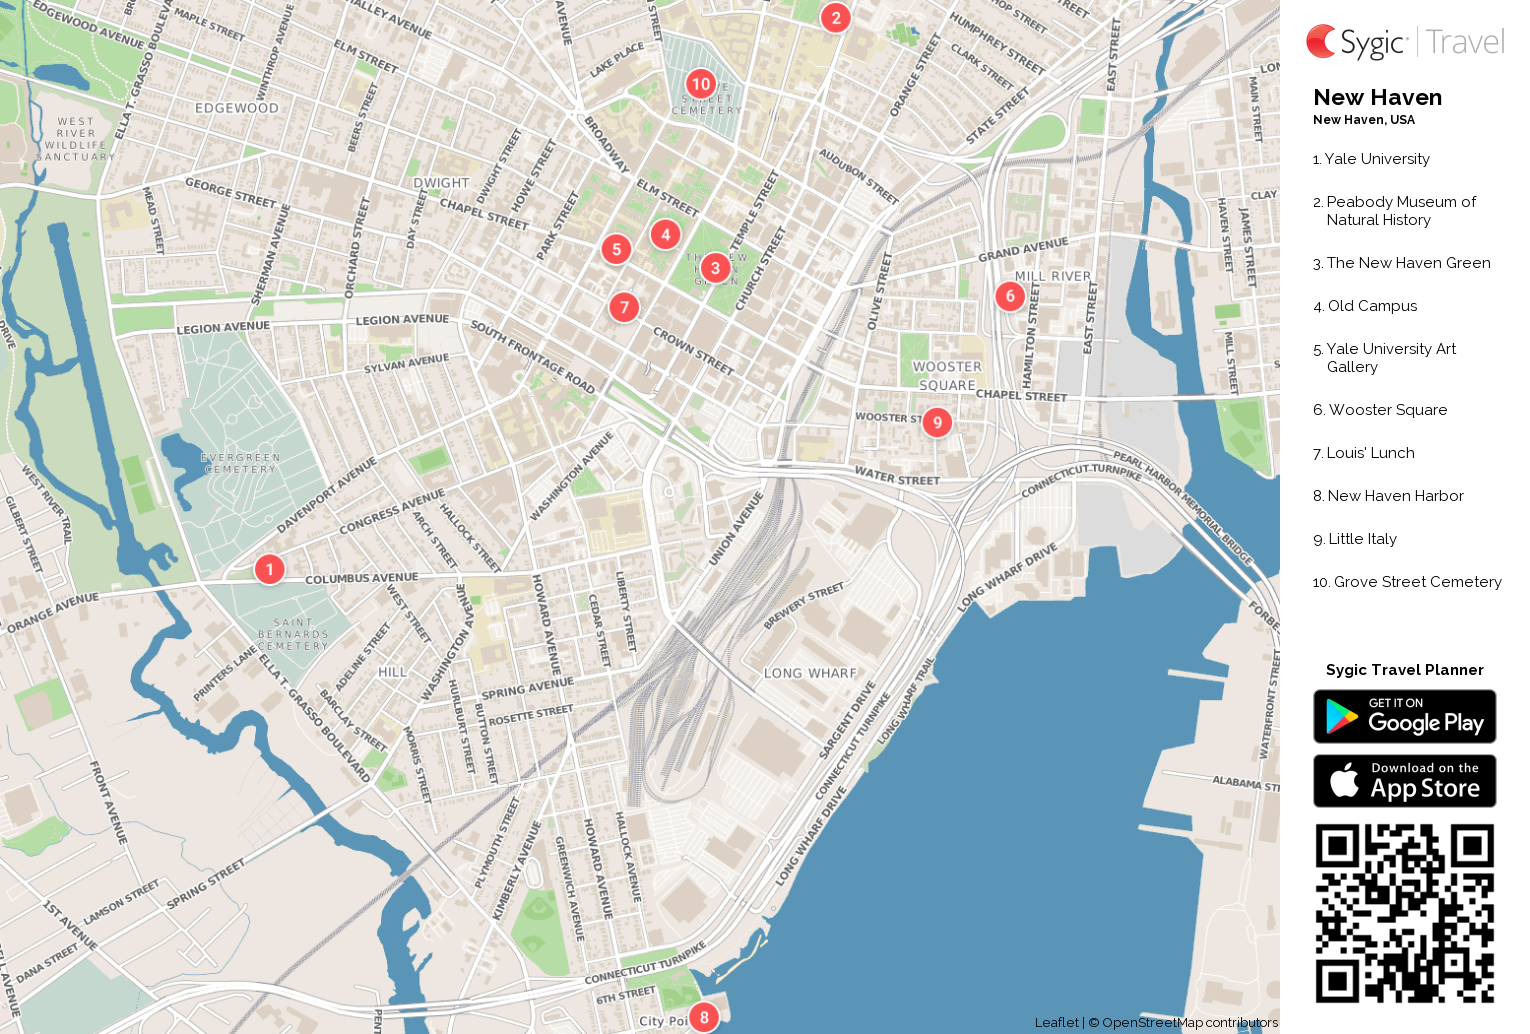 New Haven Printable Tourist Map | Sygic Travel